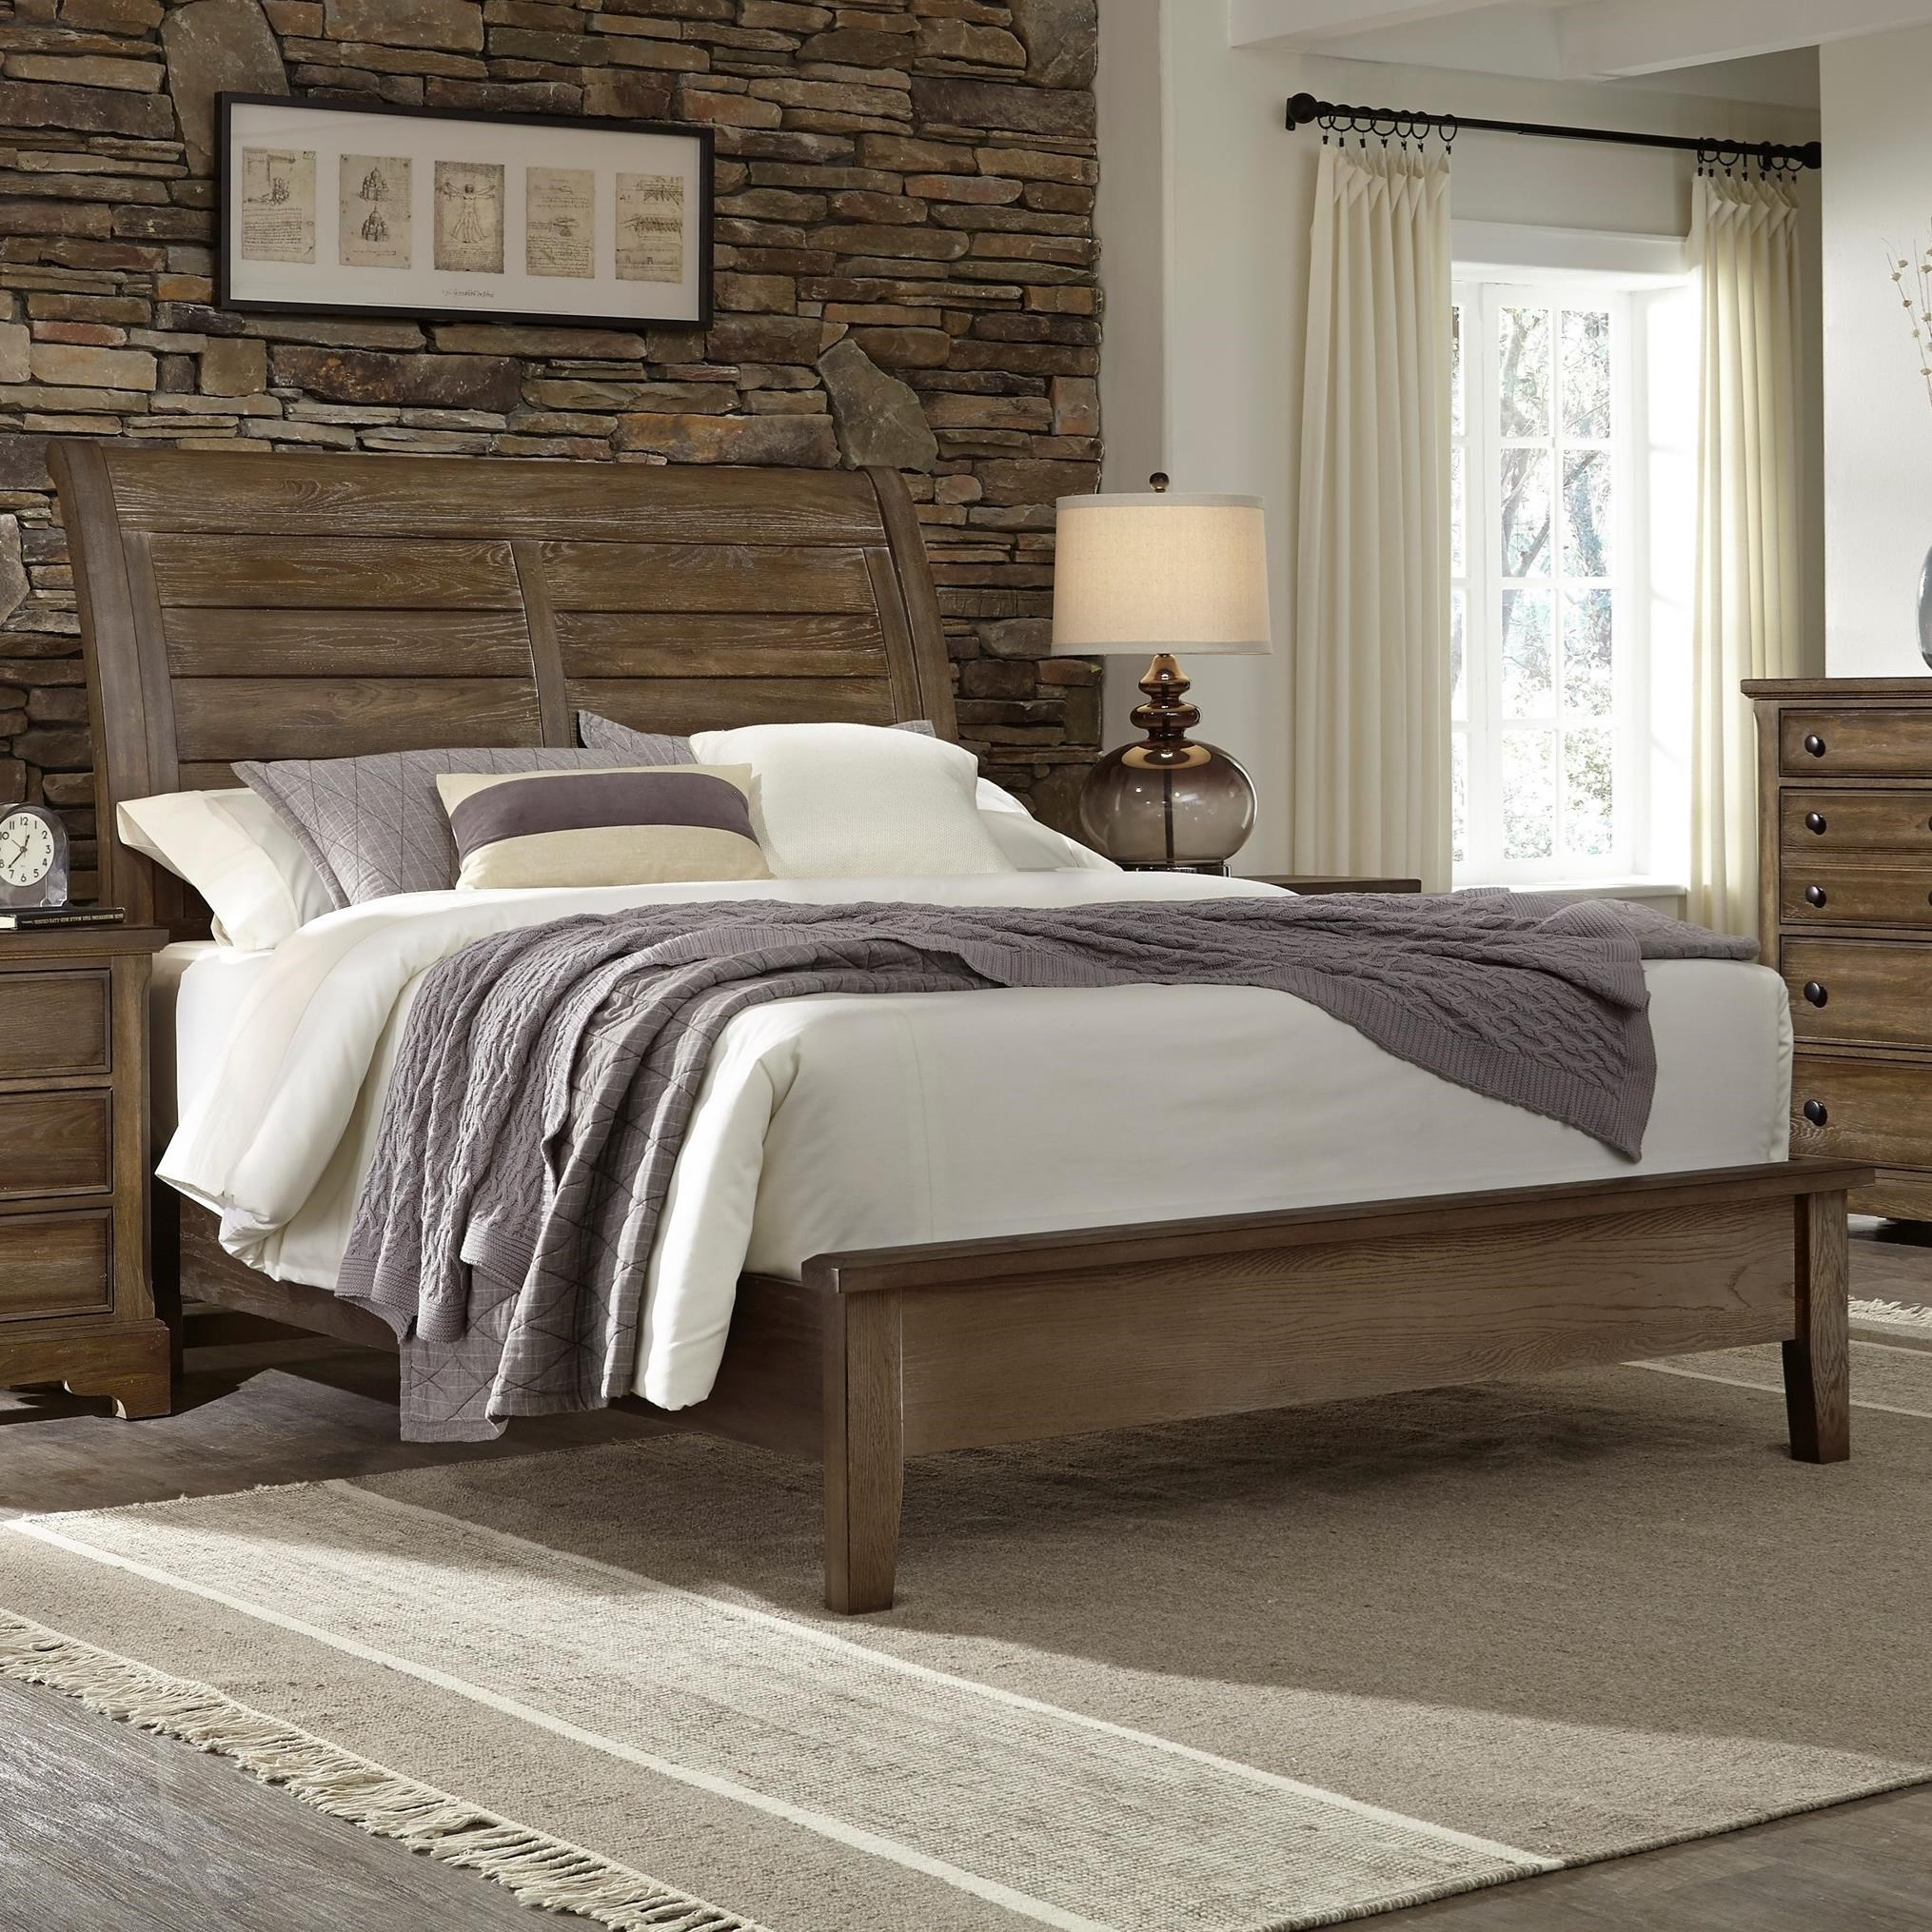 Artisan Choices Queen Sleigh Bed with Low Profile Footboard by Artisan & Post at Zak's Home